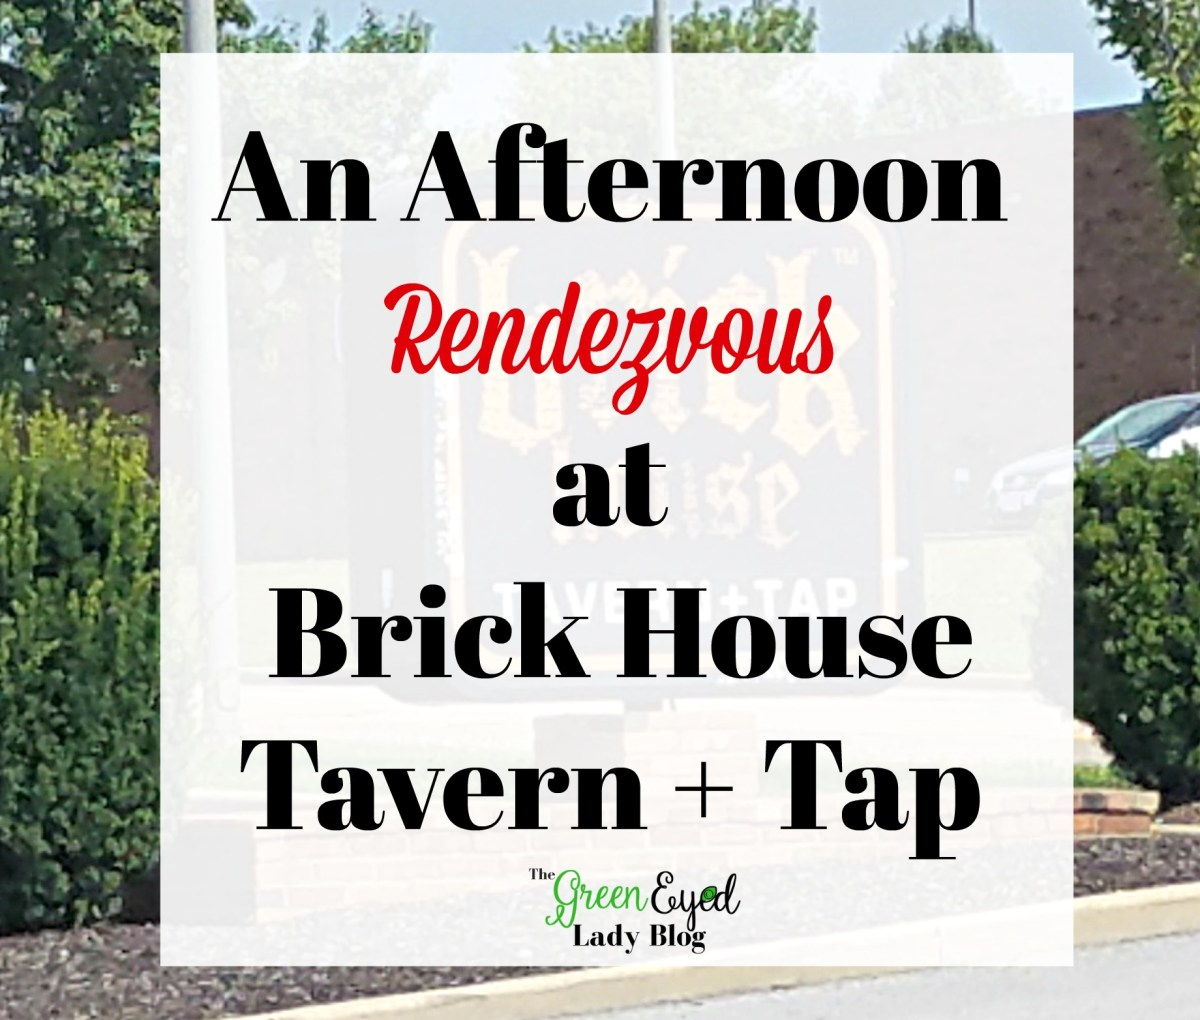 An Afternoon Rendezvous at Brick House Tavern + Tap